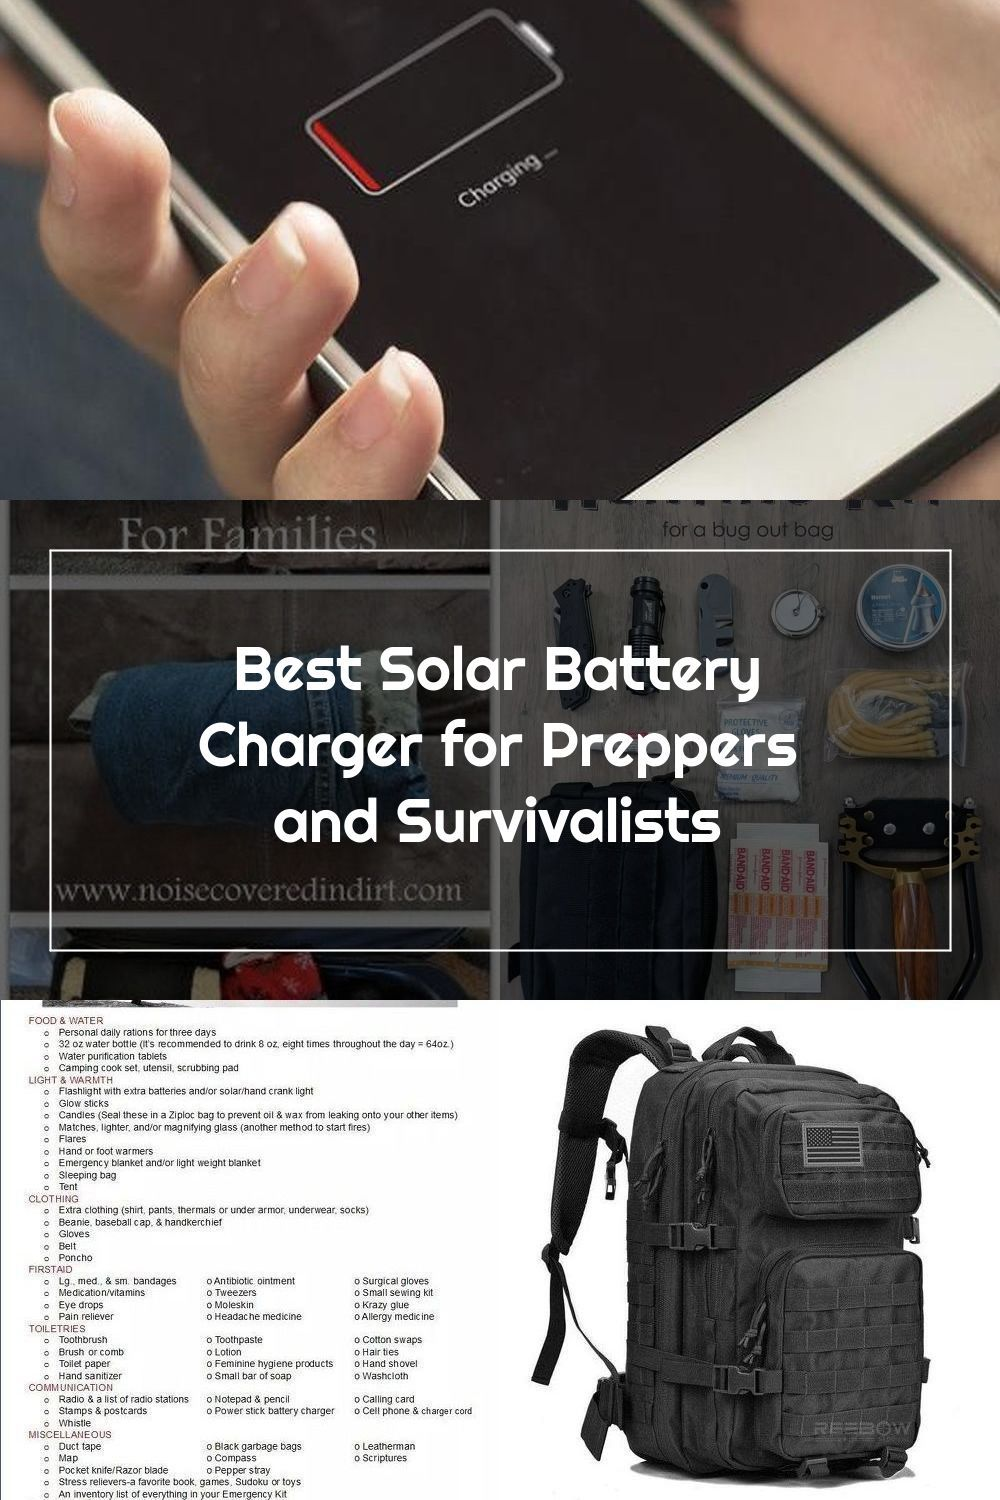 A Good Solar Power Source For Any Shtf Situation And Bug Out Bag Check Out Our Pick For The Best Solar Ba In 2020 Solar Battery Charger Solar Power Source Solar Power